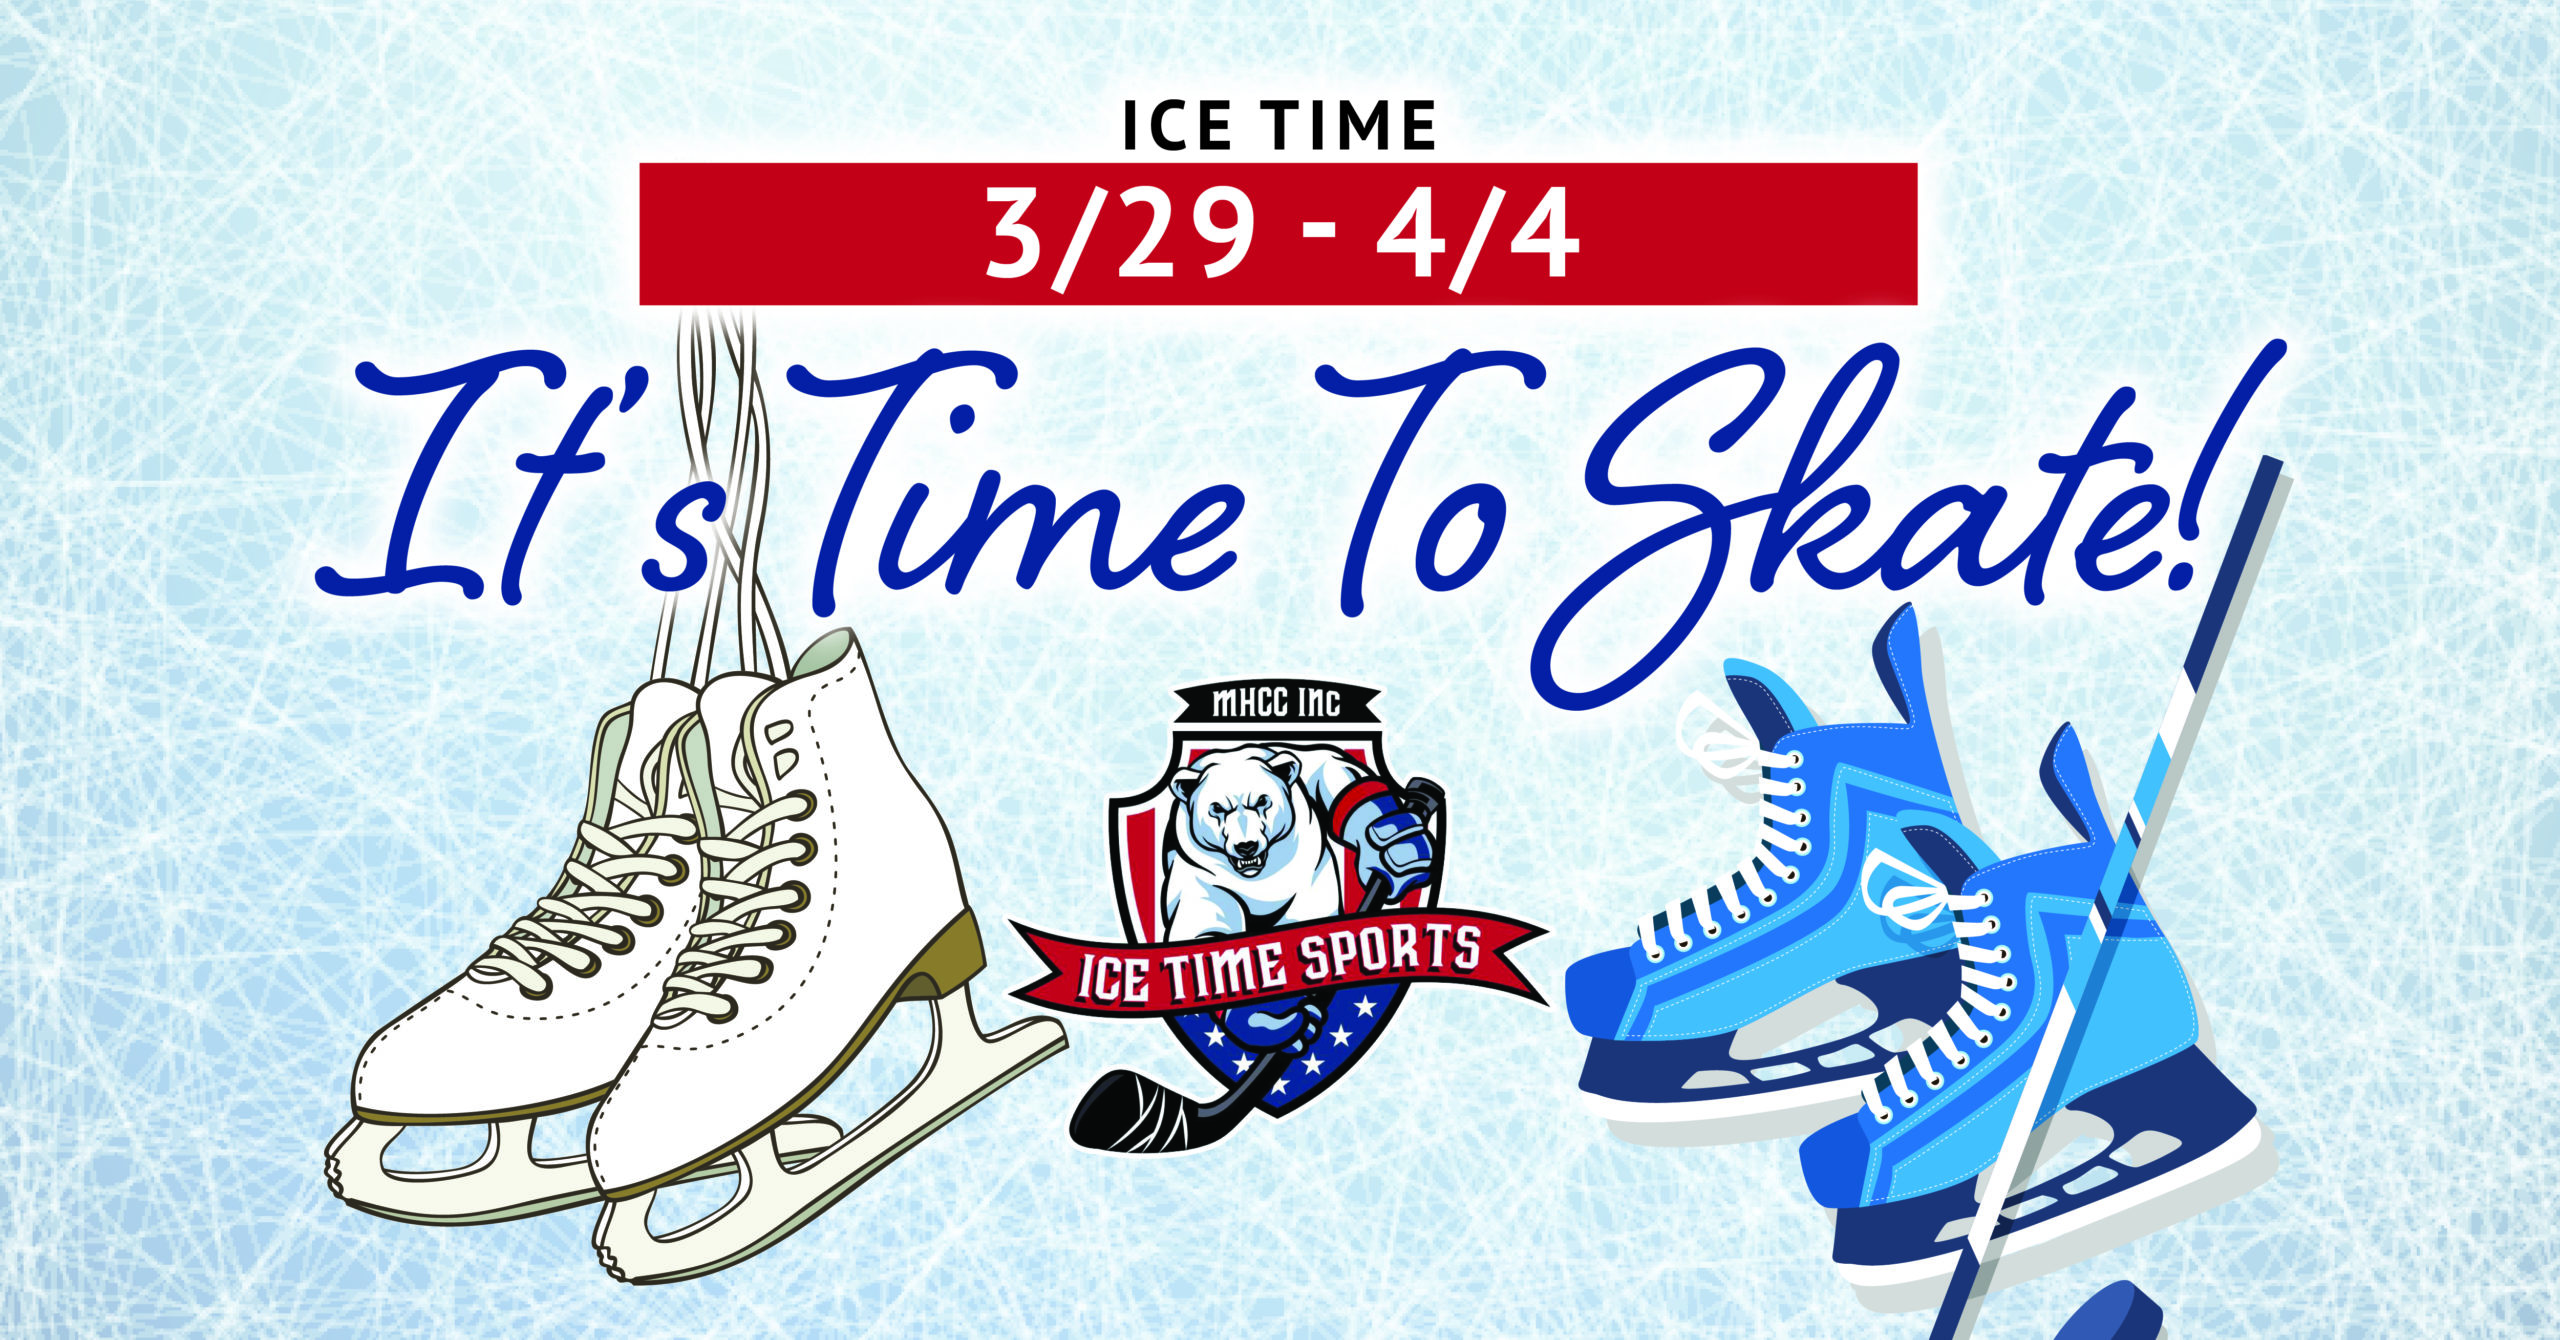 It's Time To Skate! Weekend 3/29 – 4/4